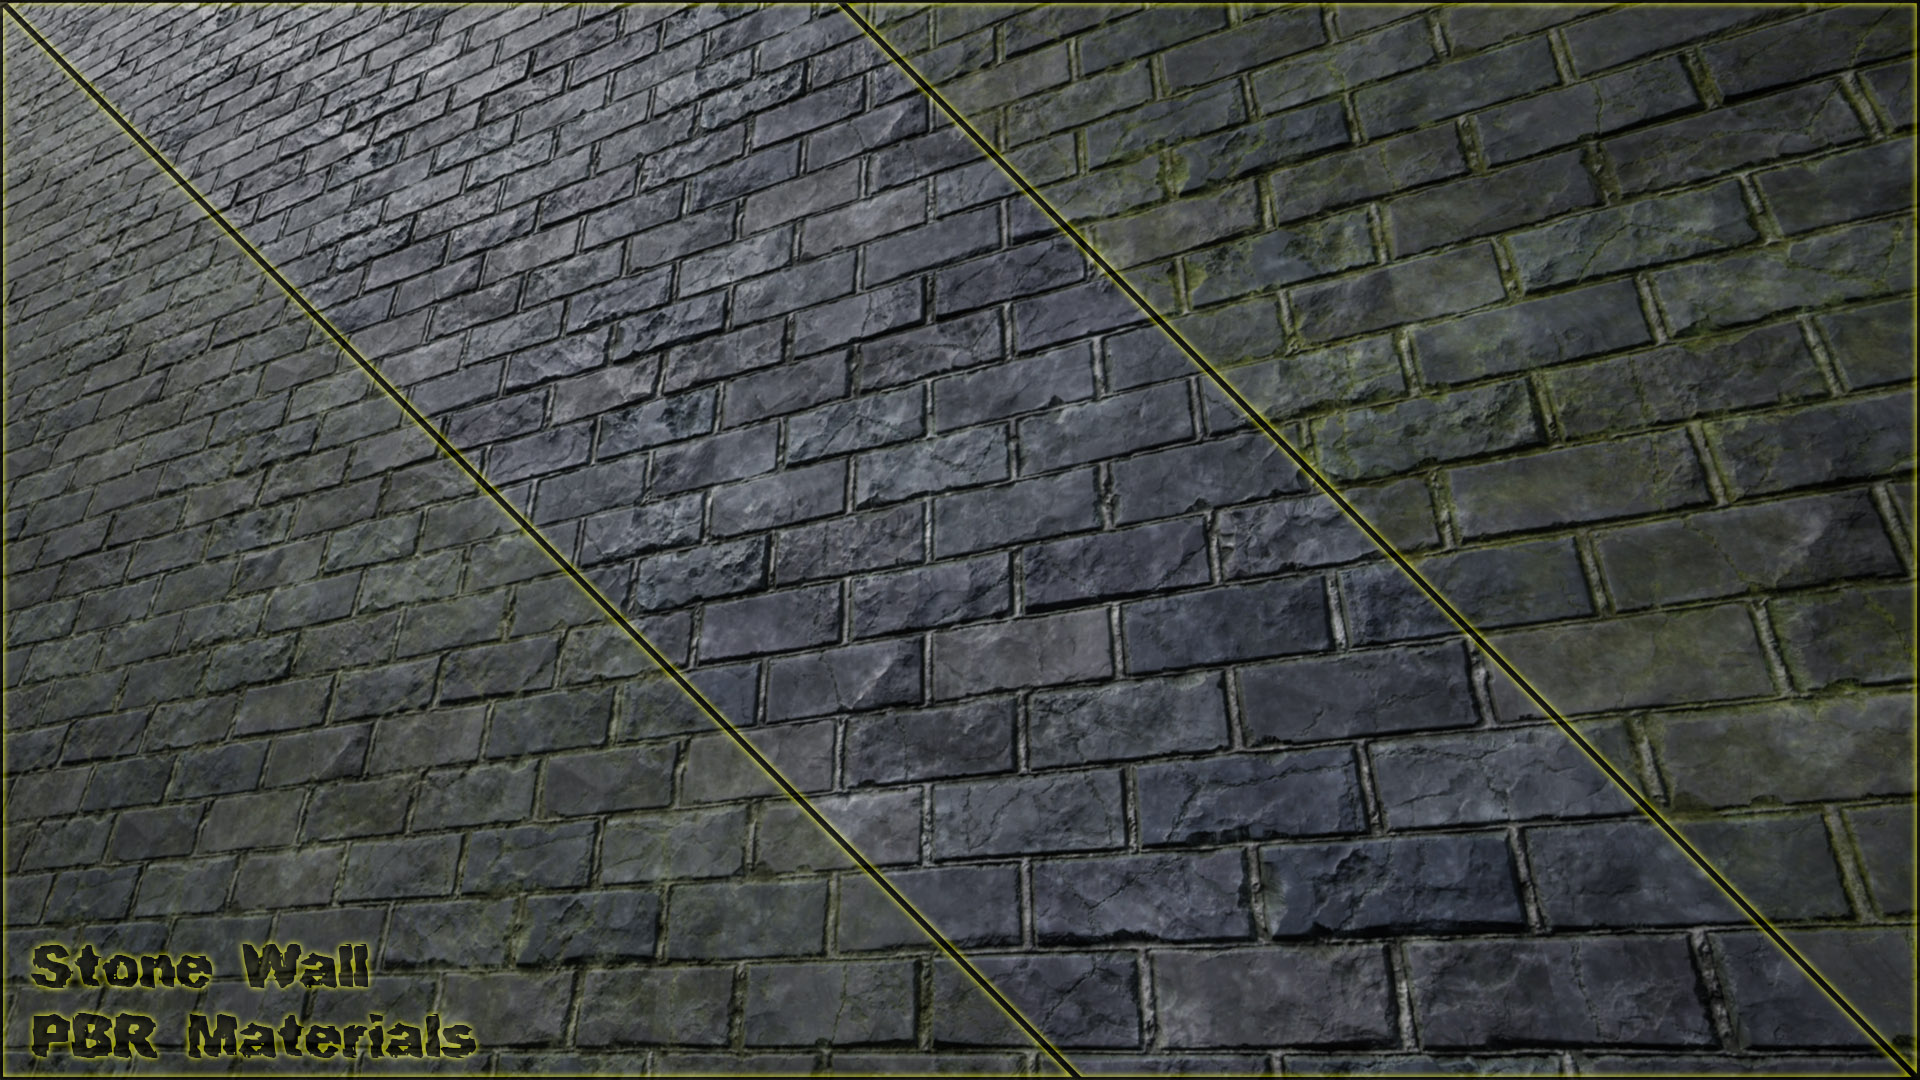 Stone Wall PBR Materials VOL 8 by Anrial in Materials - UE4 Marketplace